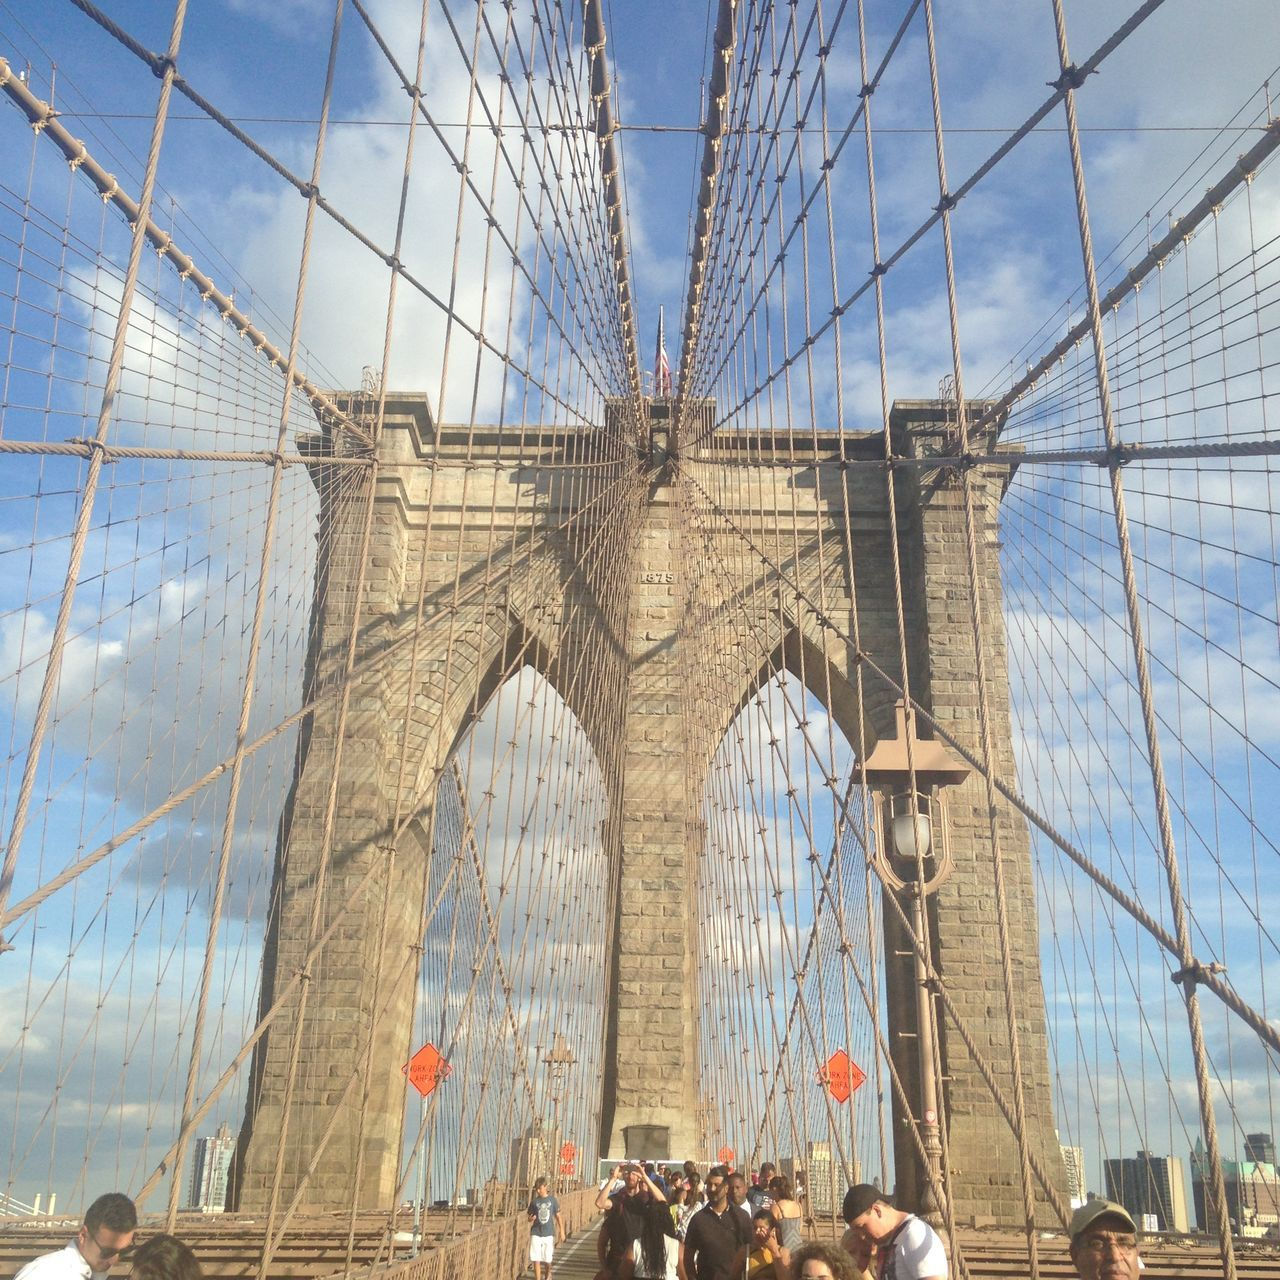 architecture, built structure, tourism, large group of people, travel destinations, travel, arch, sky, bridge - man made structure, day, women, real people, outdoors, suspension bridge, vacations, men, building exterior, city, crowd, people, adult